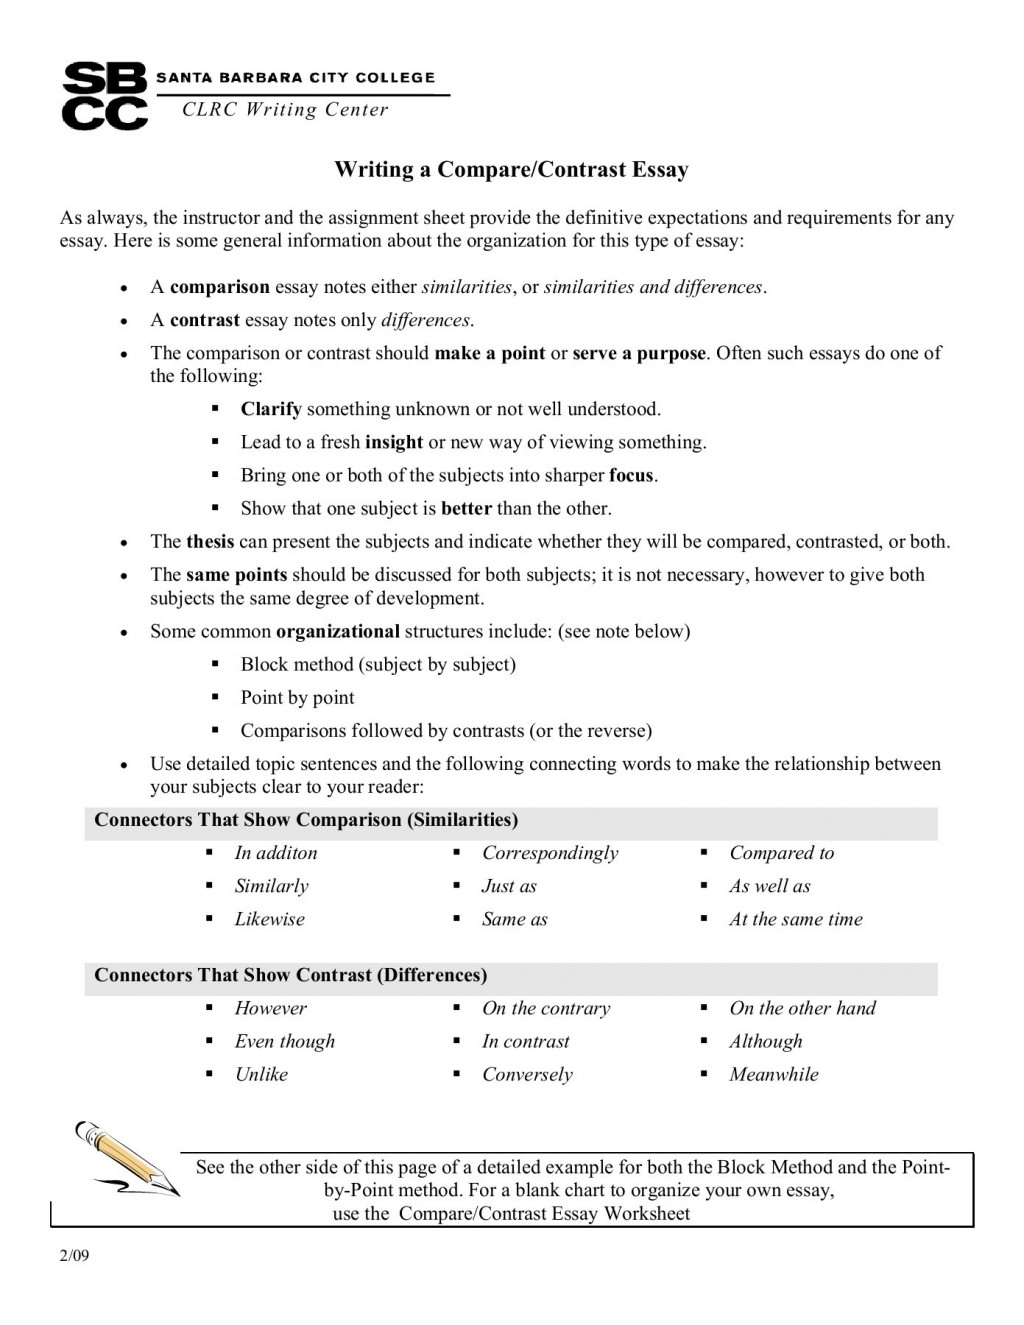 014 Compare Essay Beautiful Contrast Topics Ielts Examples College Middle School Large